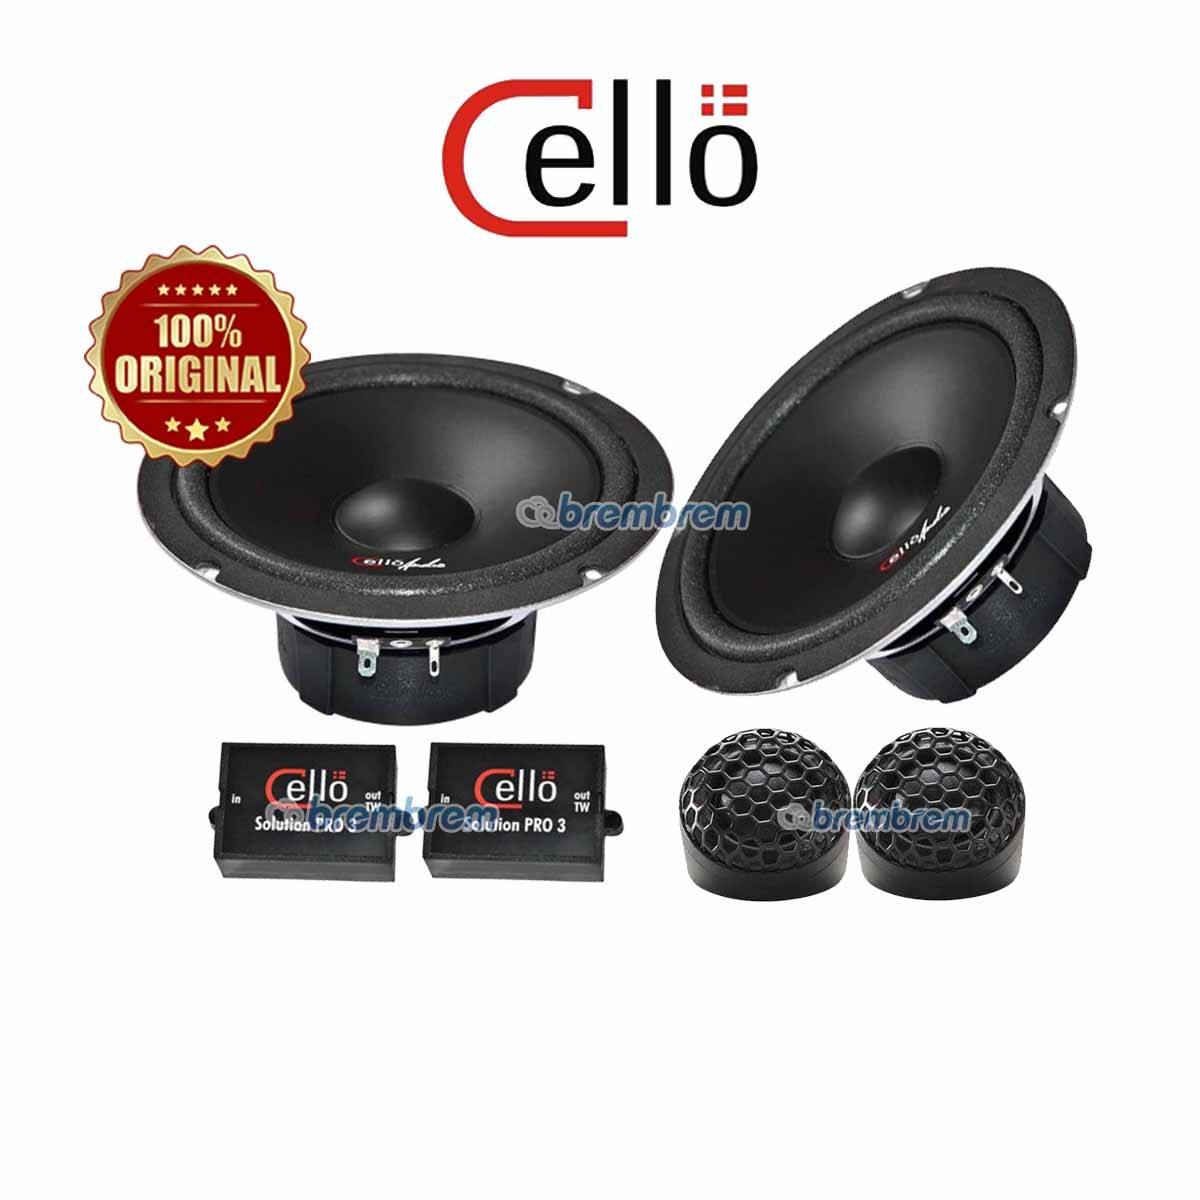 CELLO SOLUTION PRO 3 - SPEAKER 2 WAY